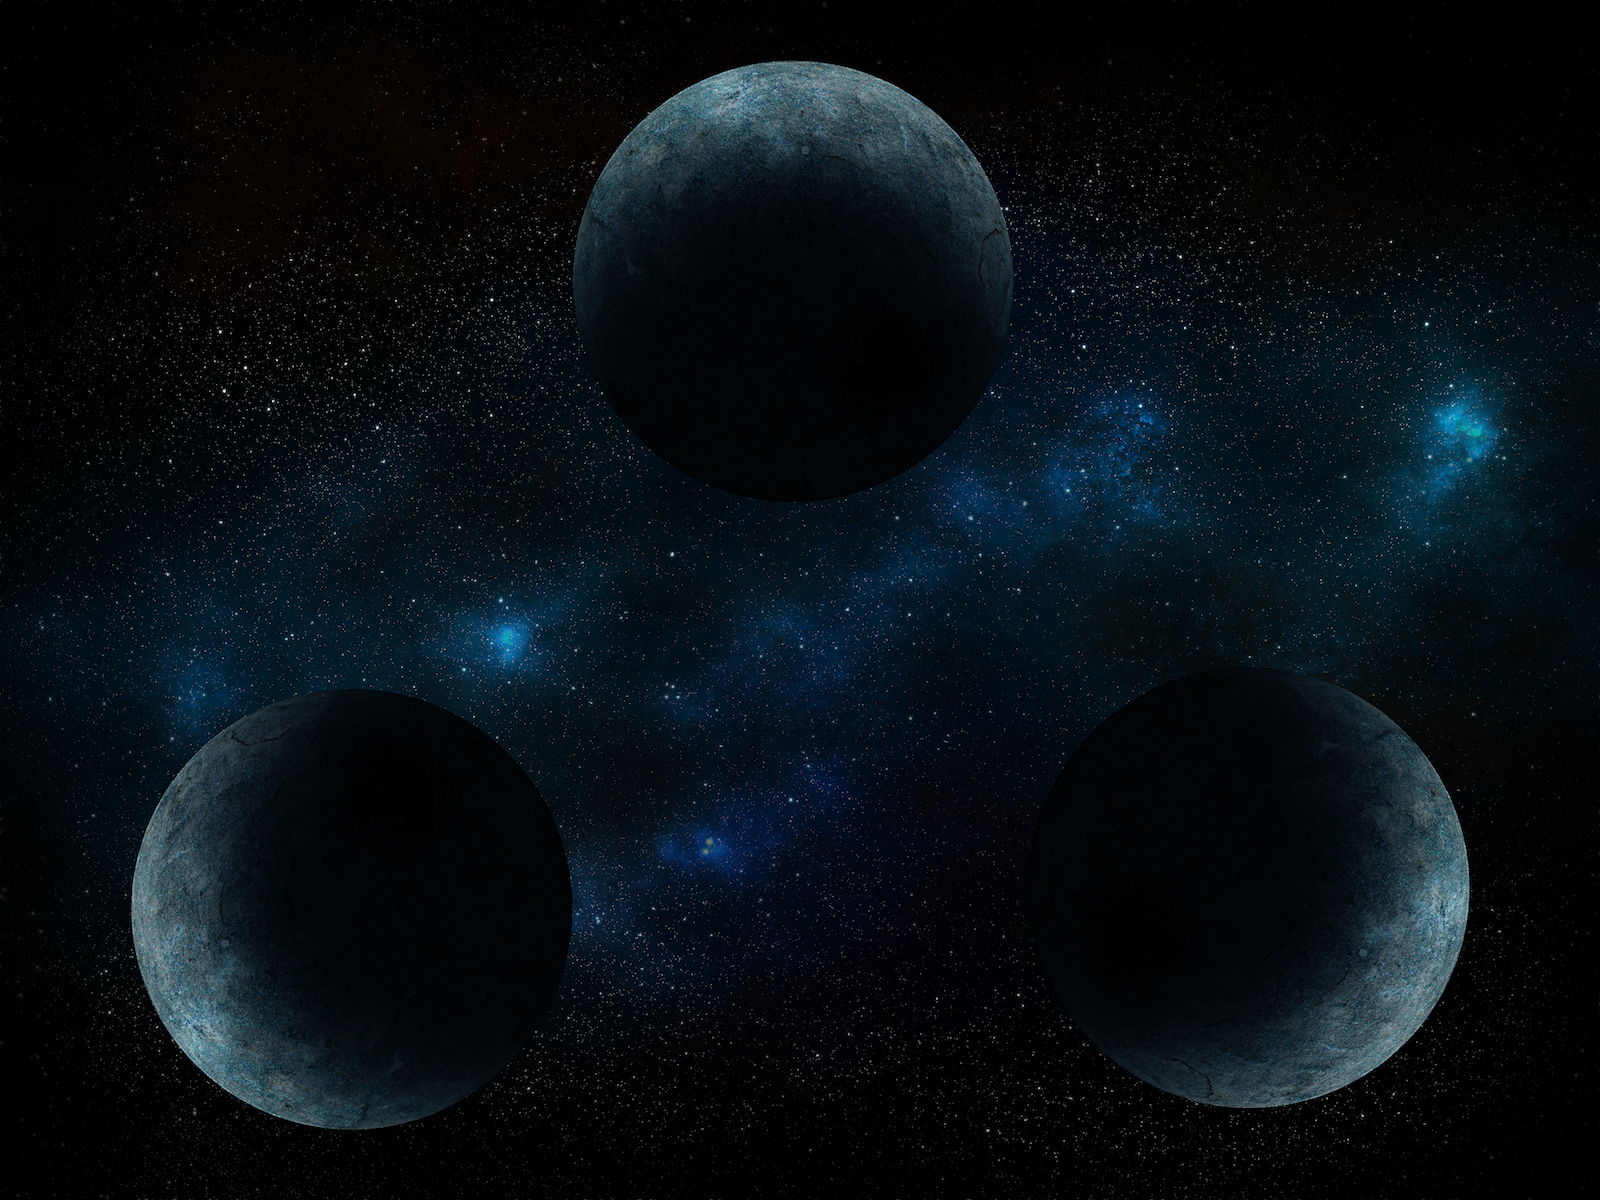 The 'Three-Body Problem' Has Perplexed Astronomers Since Newton Formulated It. A.I. Just Cracked It in Under a Second.